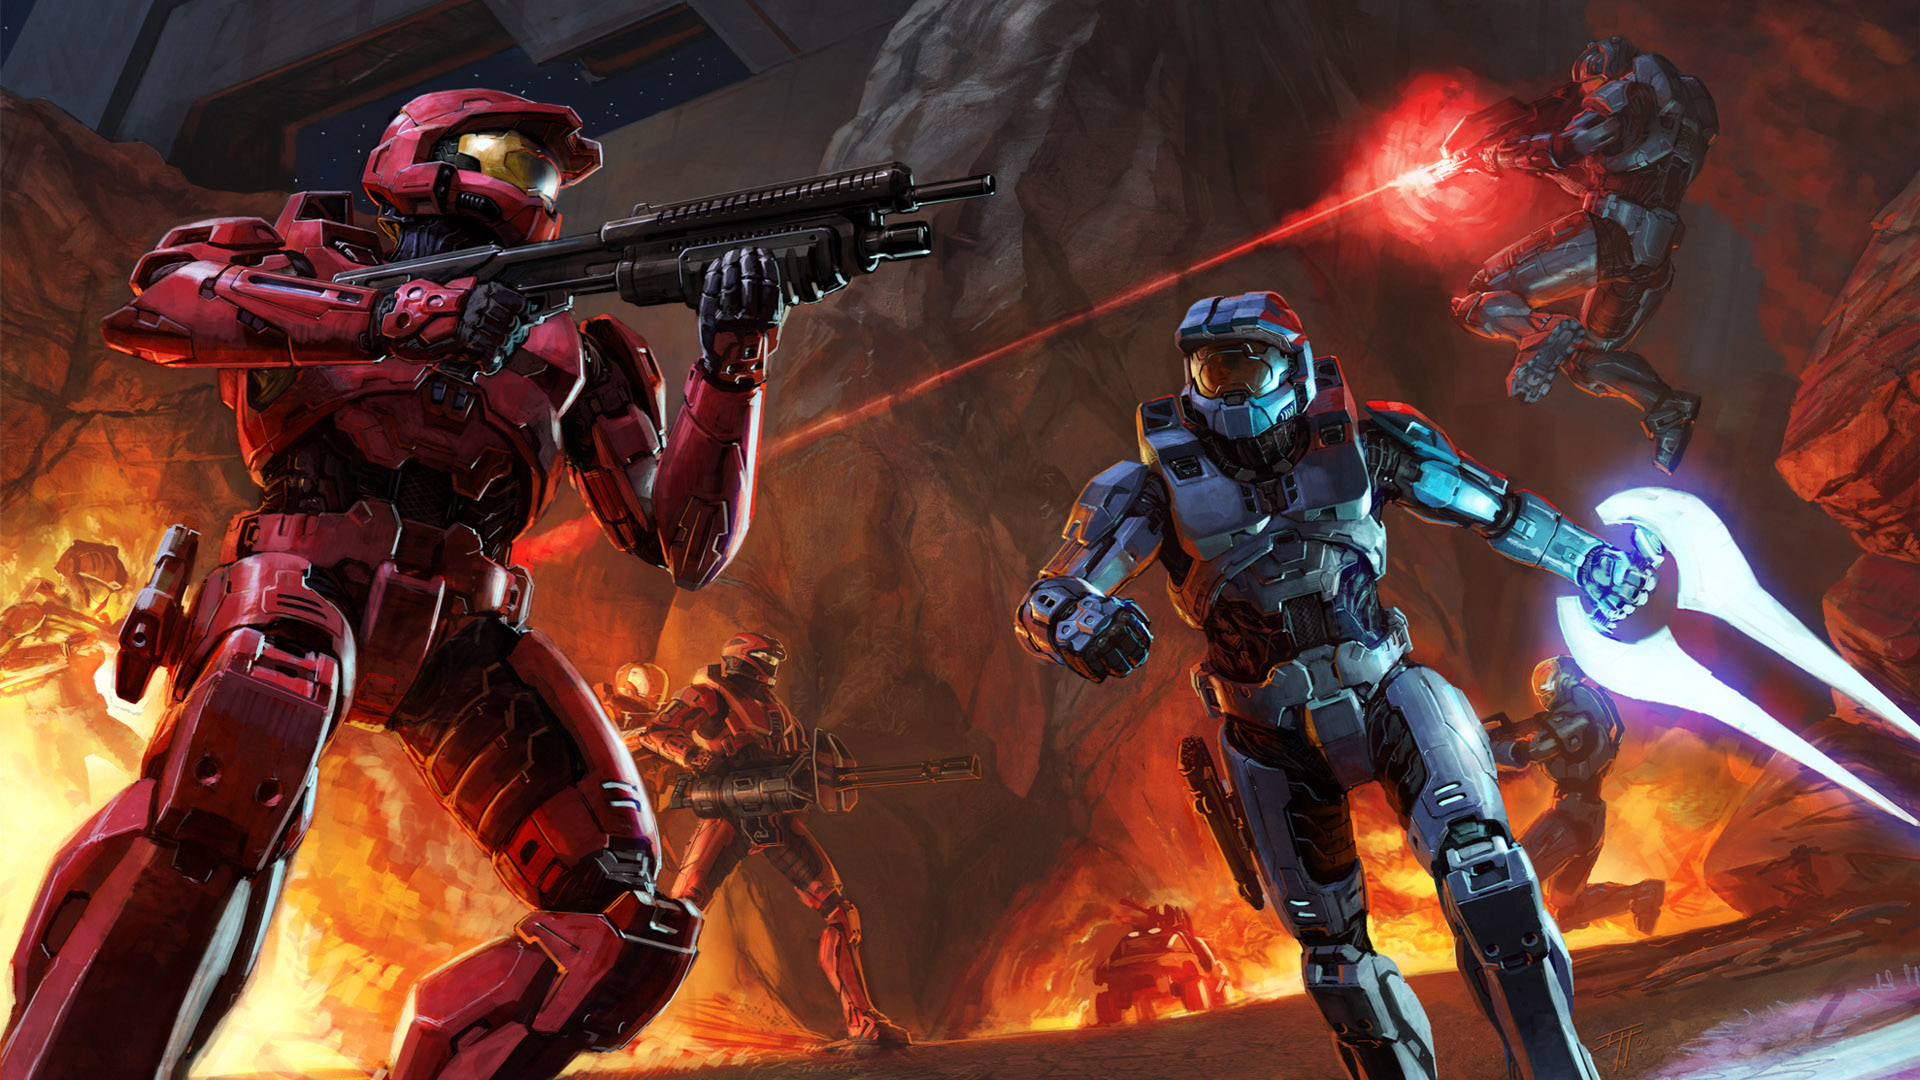 Red Vs Blue Grew Up With Its Viewers The Emory Wheel